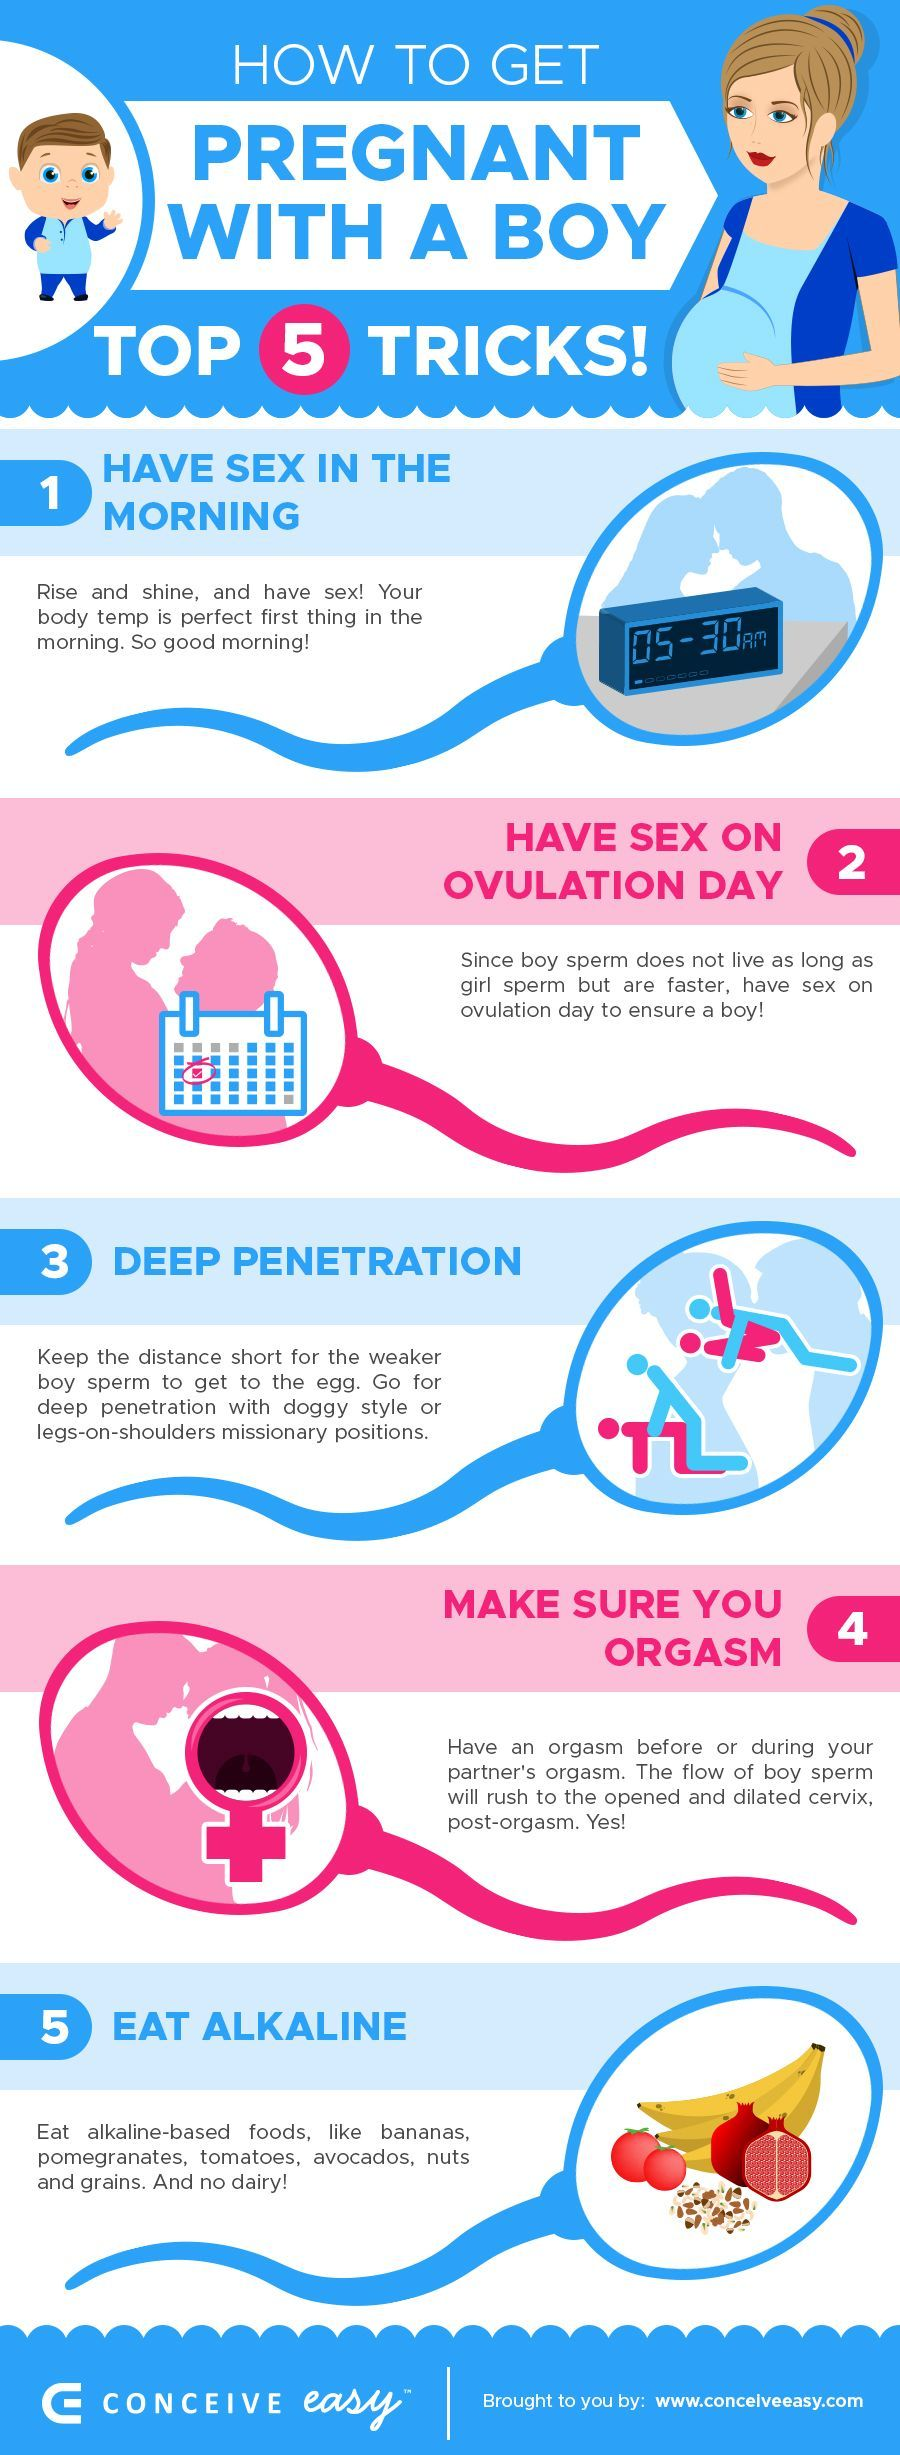 How to Get Pregnant with a Boy Infographic Top 7 Tips & Tricks